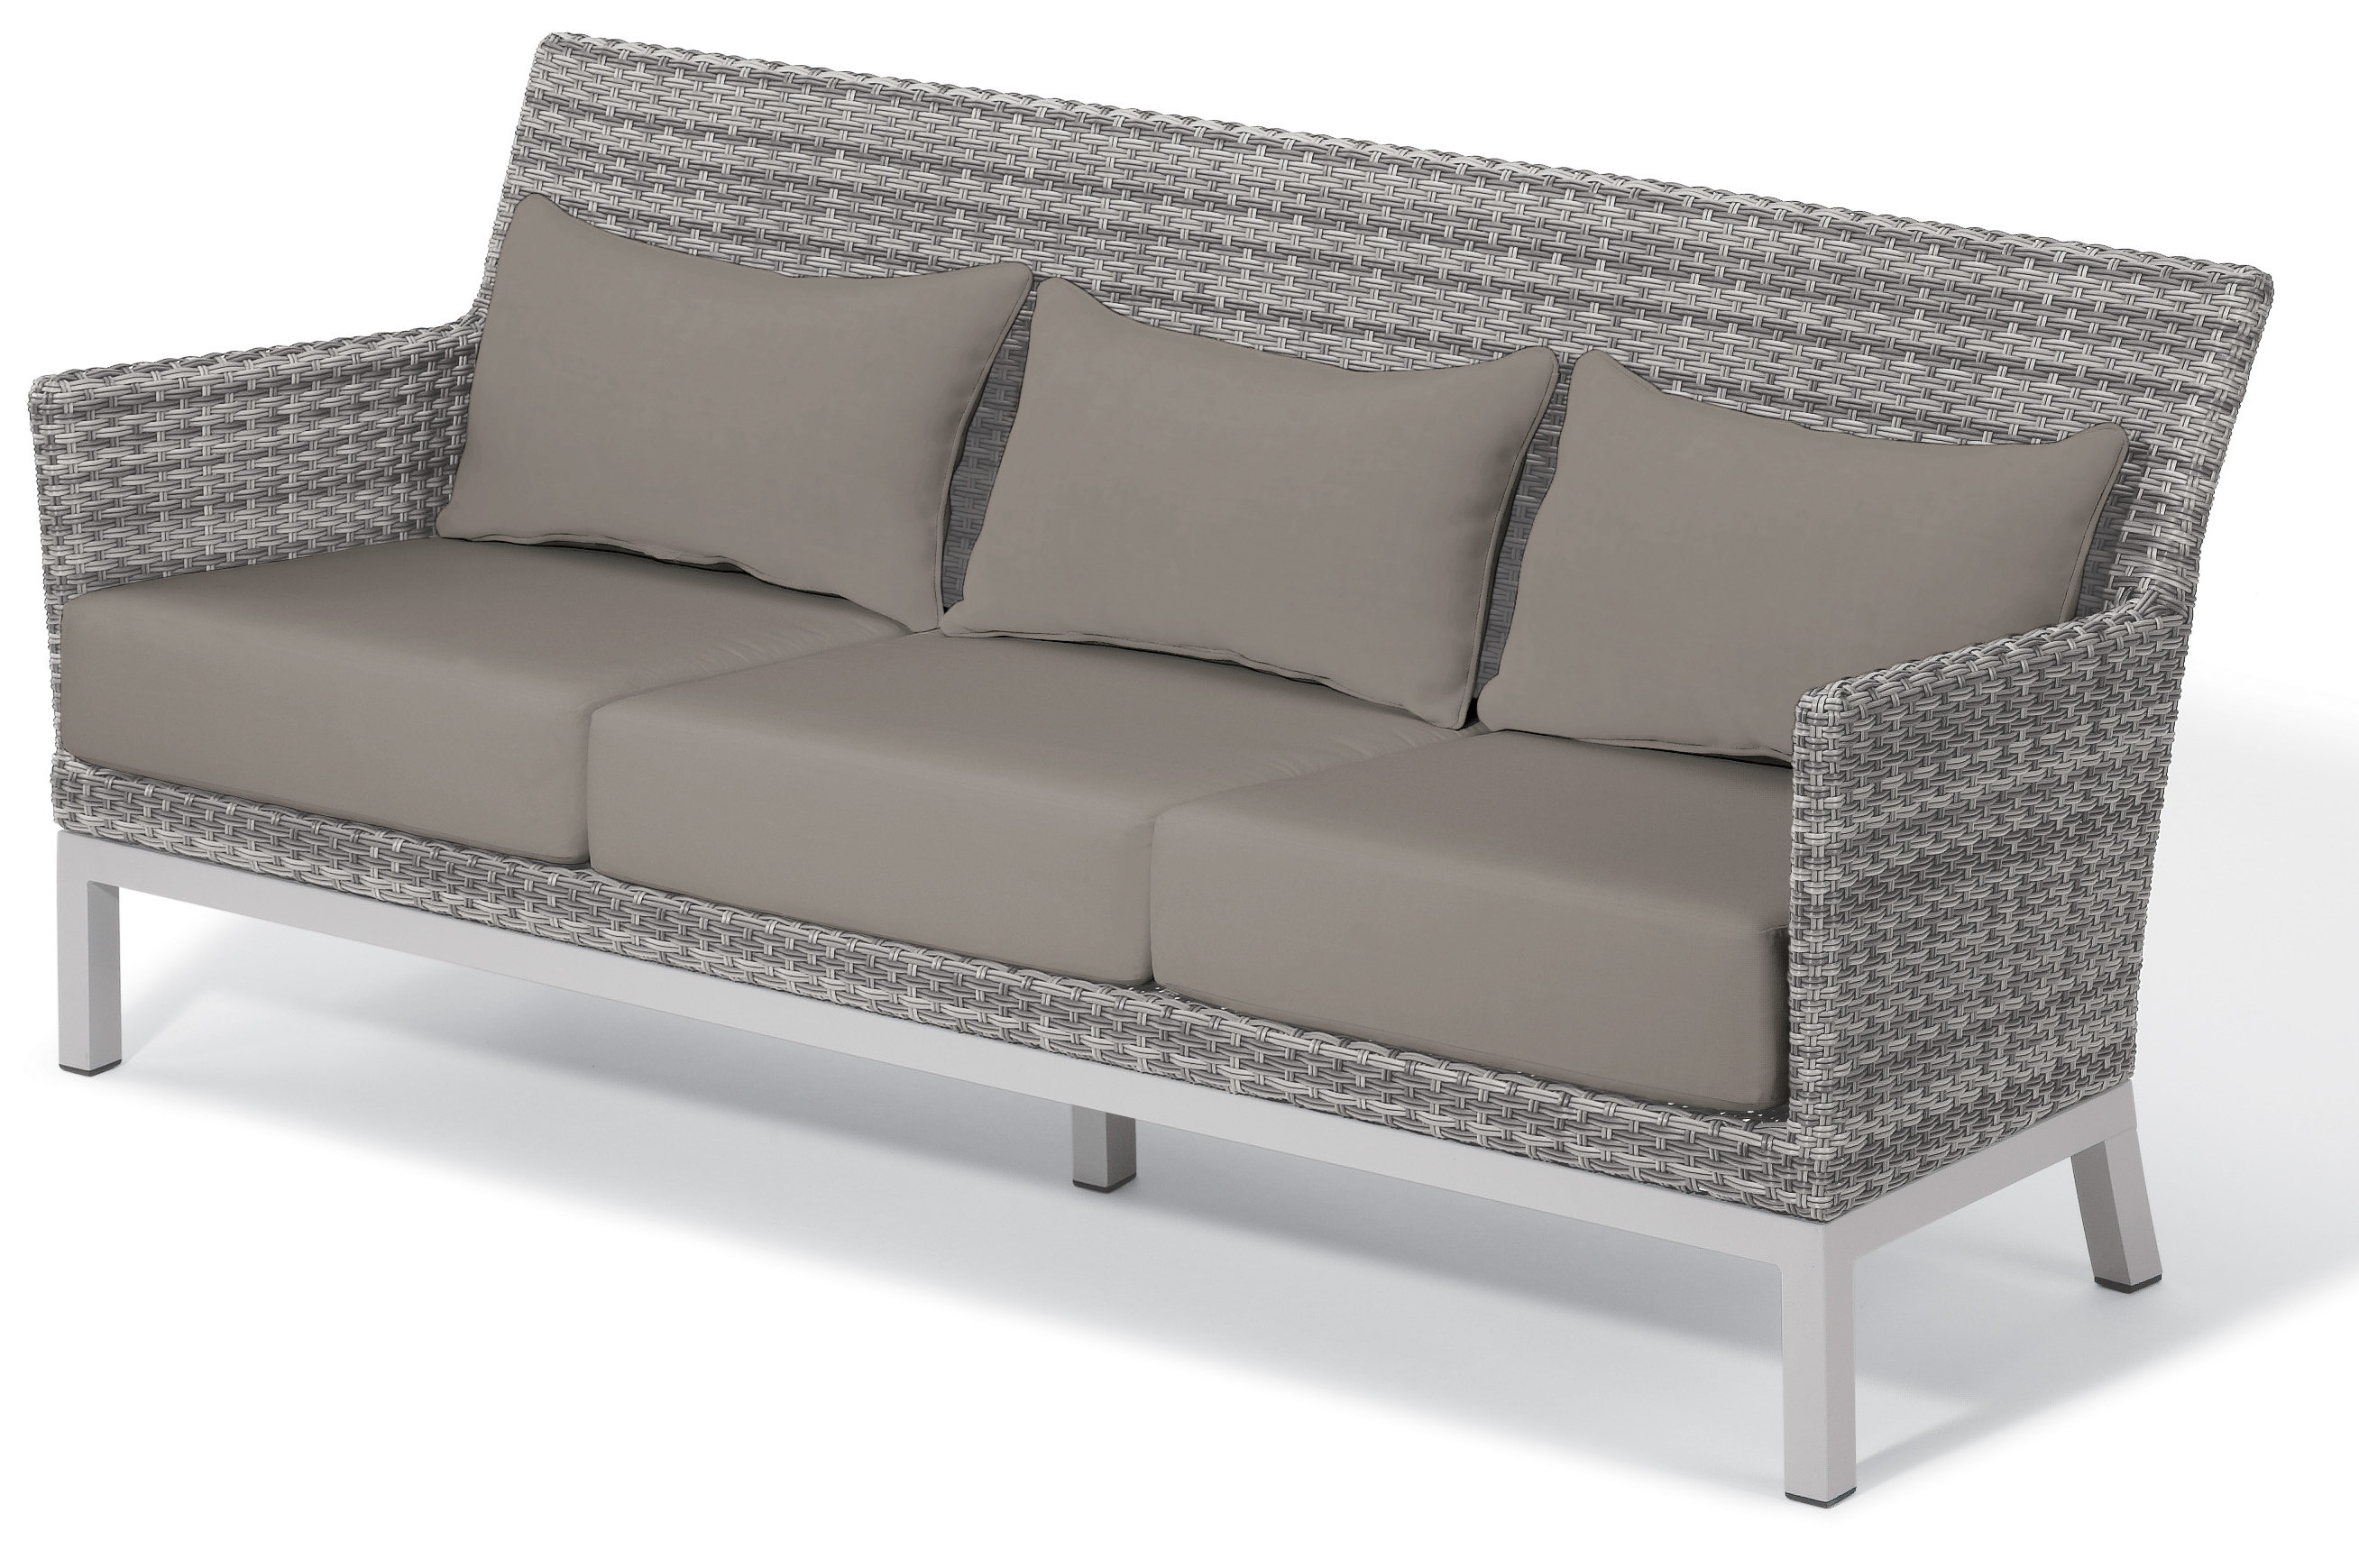 2019 Saleem Patio Sofa With Cushions Within Keever Patio Sofas With Sunbrella Cushions (View 2 of 20)